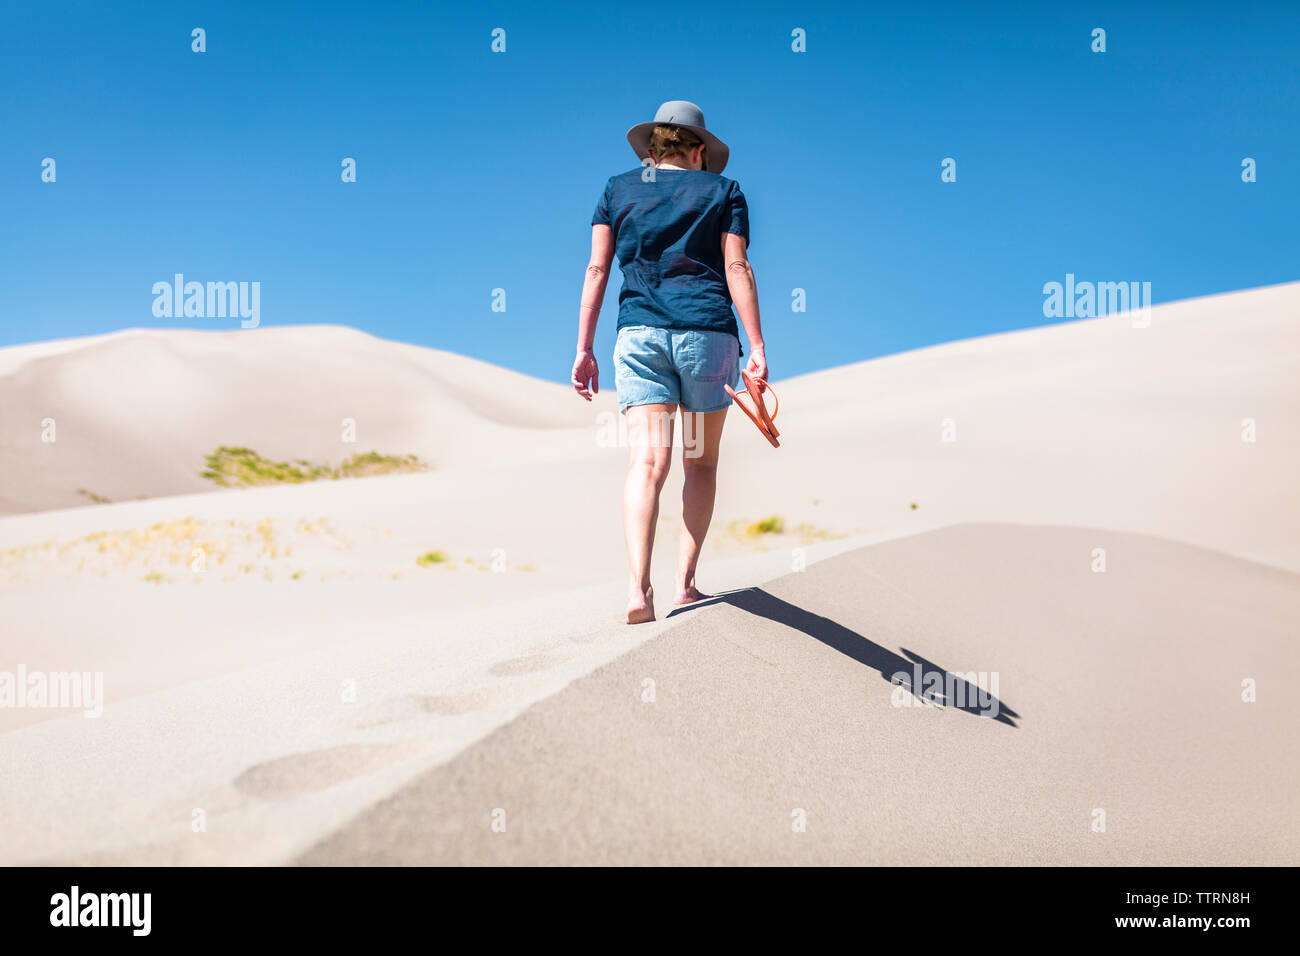 Rear view of woman holding flip-flop while walking on sand at Great Sand Dunes National Park during sunny day - Stock Image